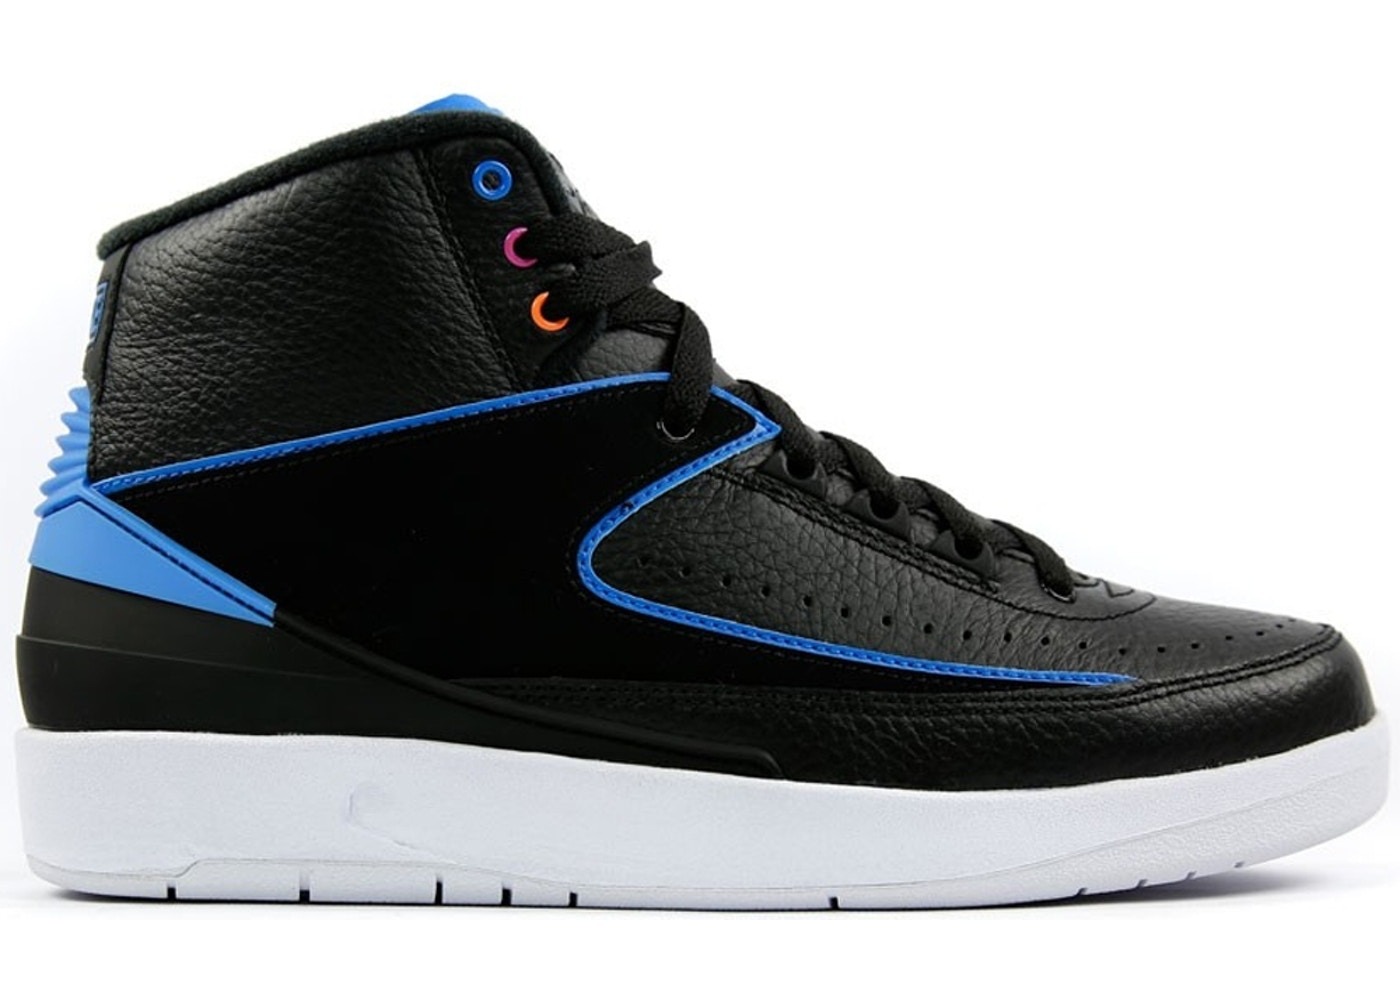 new products a2a4c 3cb11 Buy Air Jordan 2 Shoes & Deadstock Sneakers